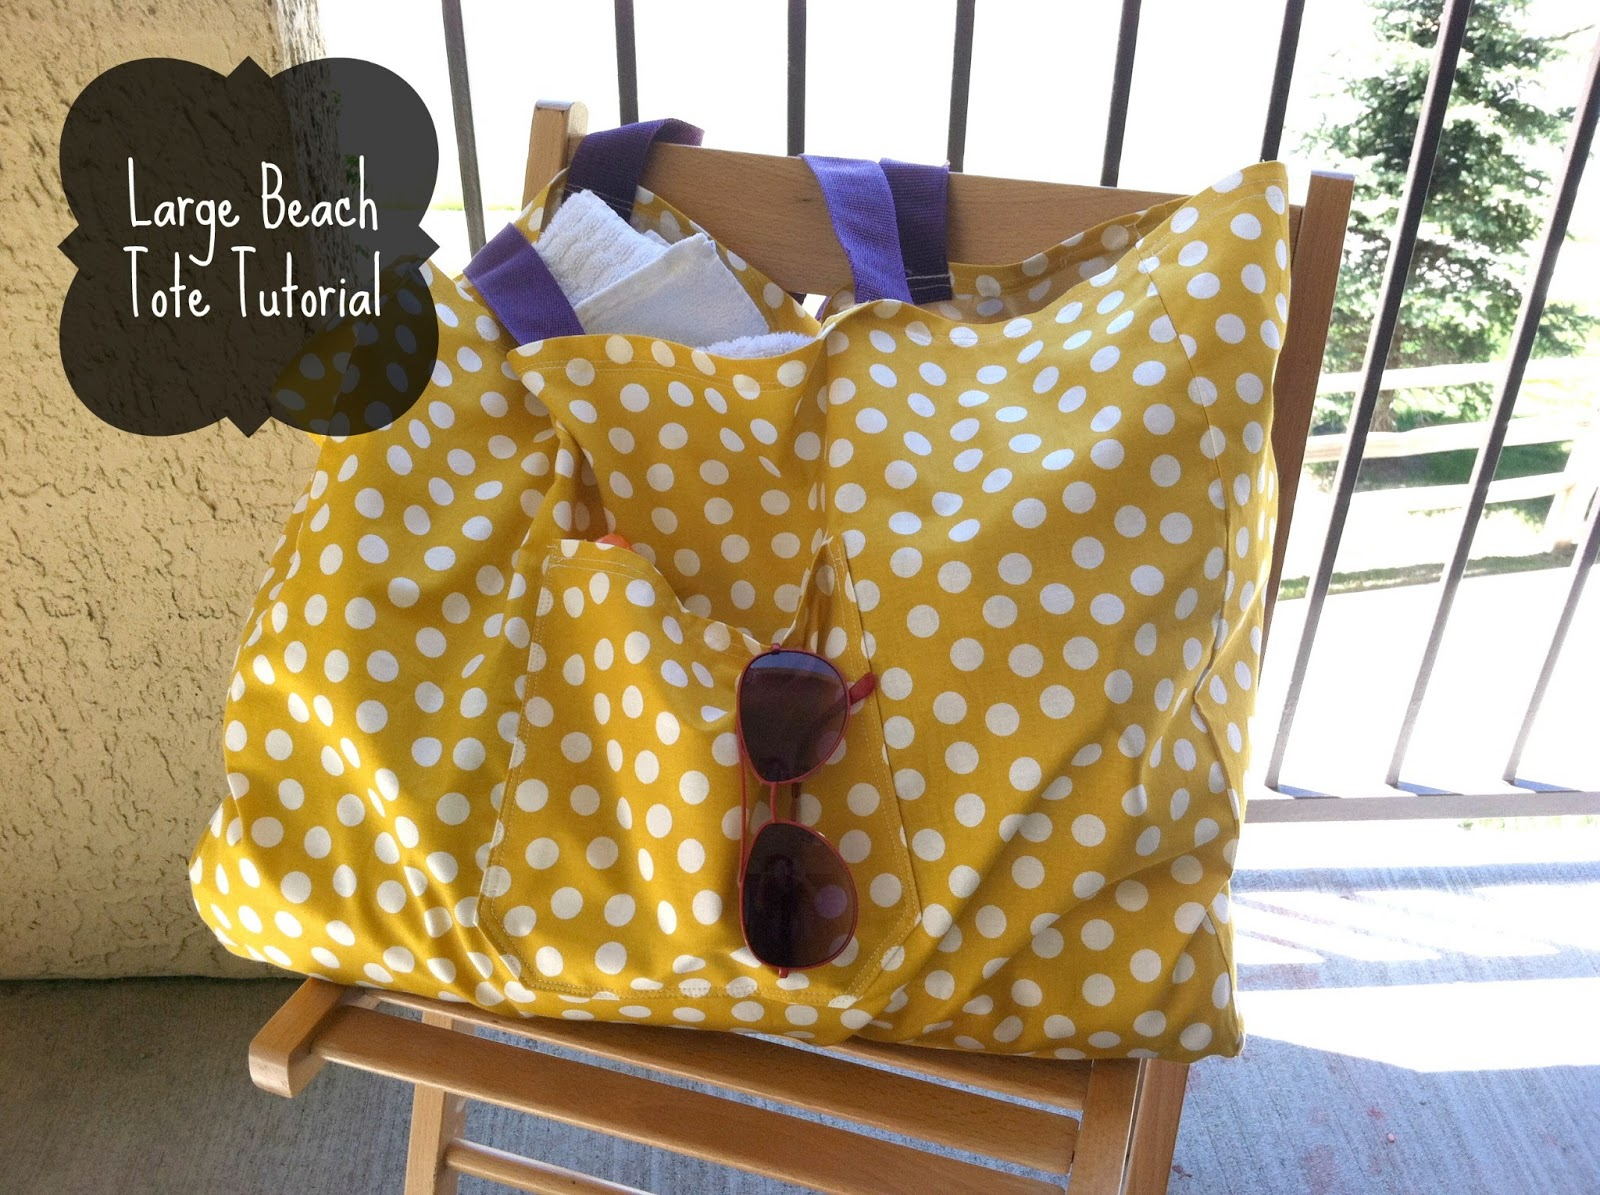 Little miss kims class large beach bag tote tutorial jeuxipadfo Gallery